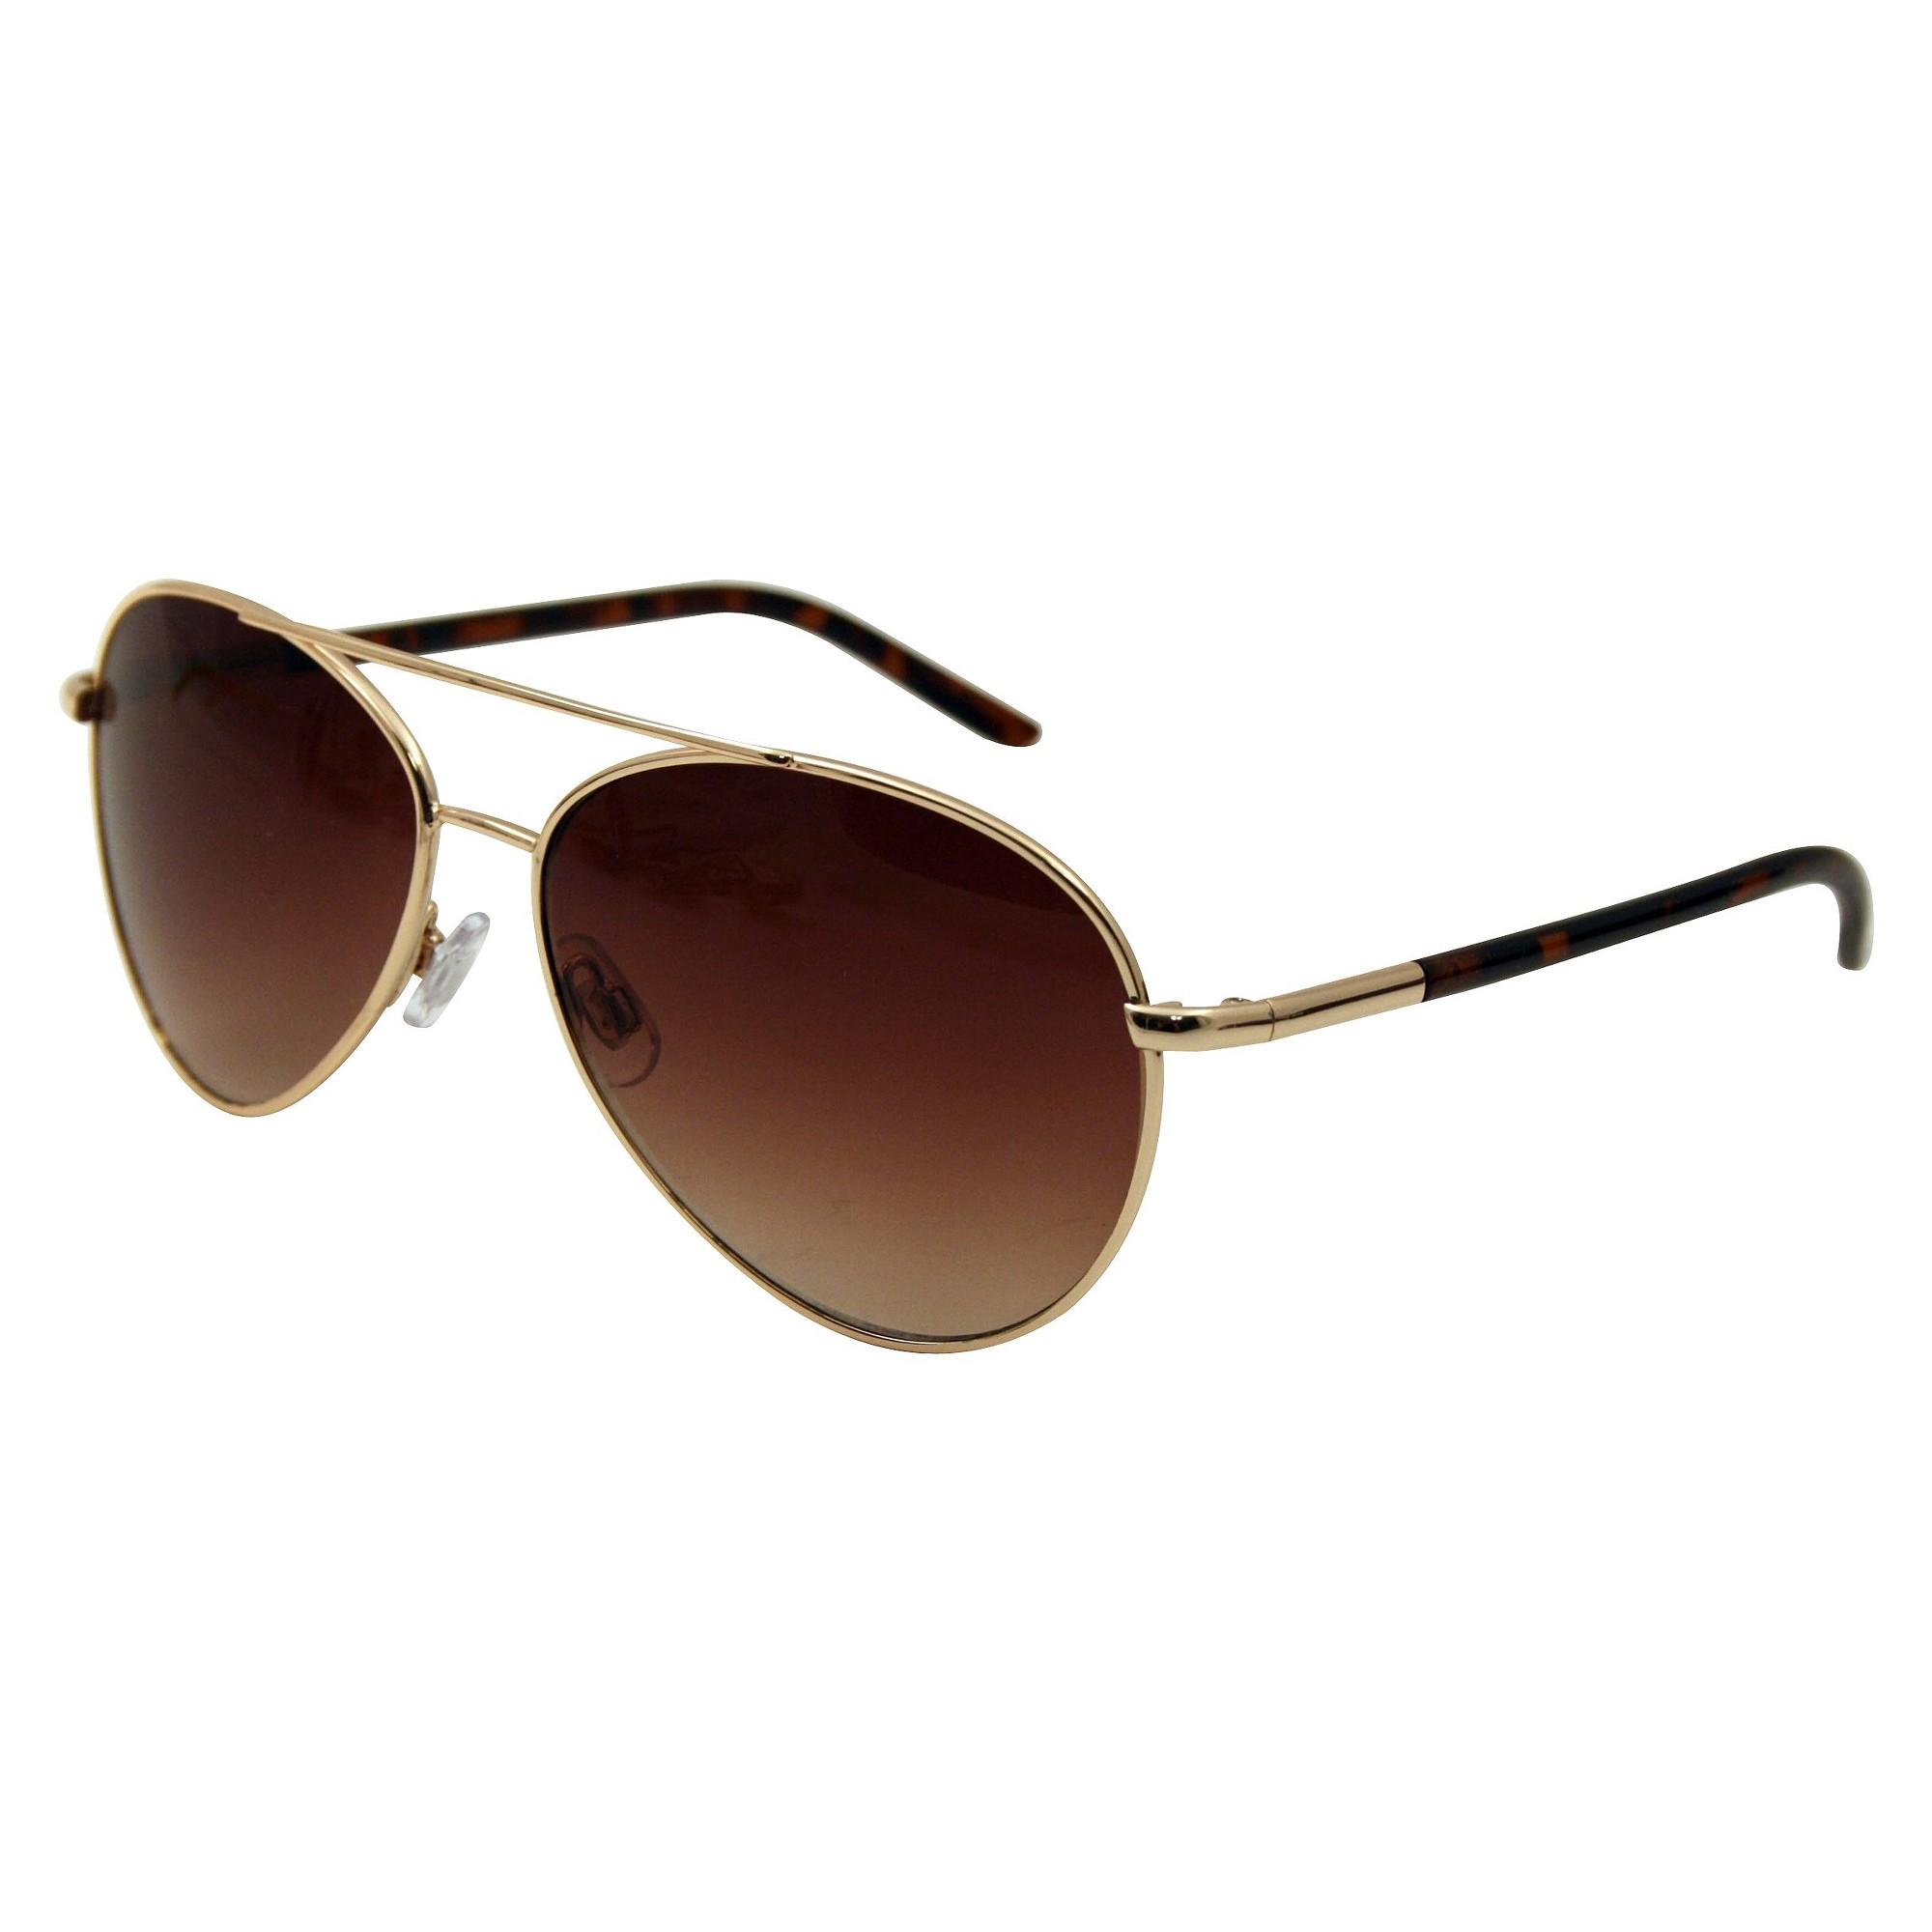 Women's Metal Aviator Sunglasses - Wild Fable Gold, Women's, Size: Small, Gold/Grey